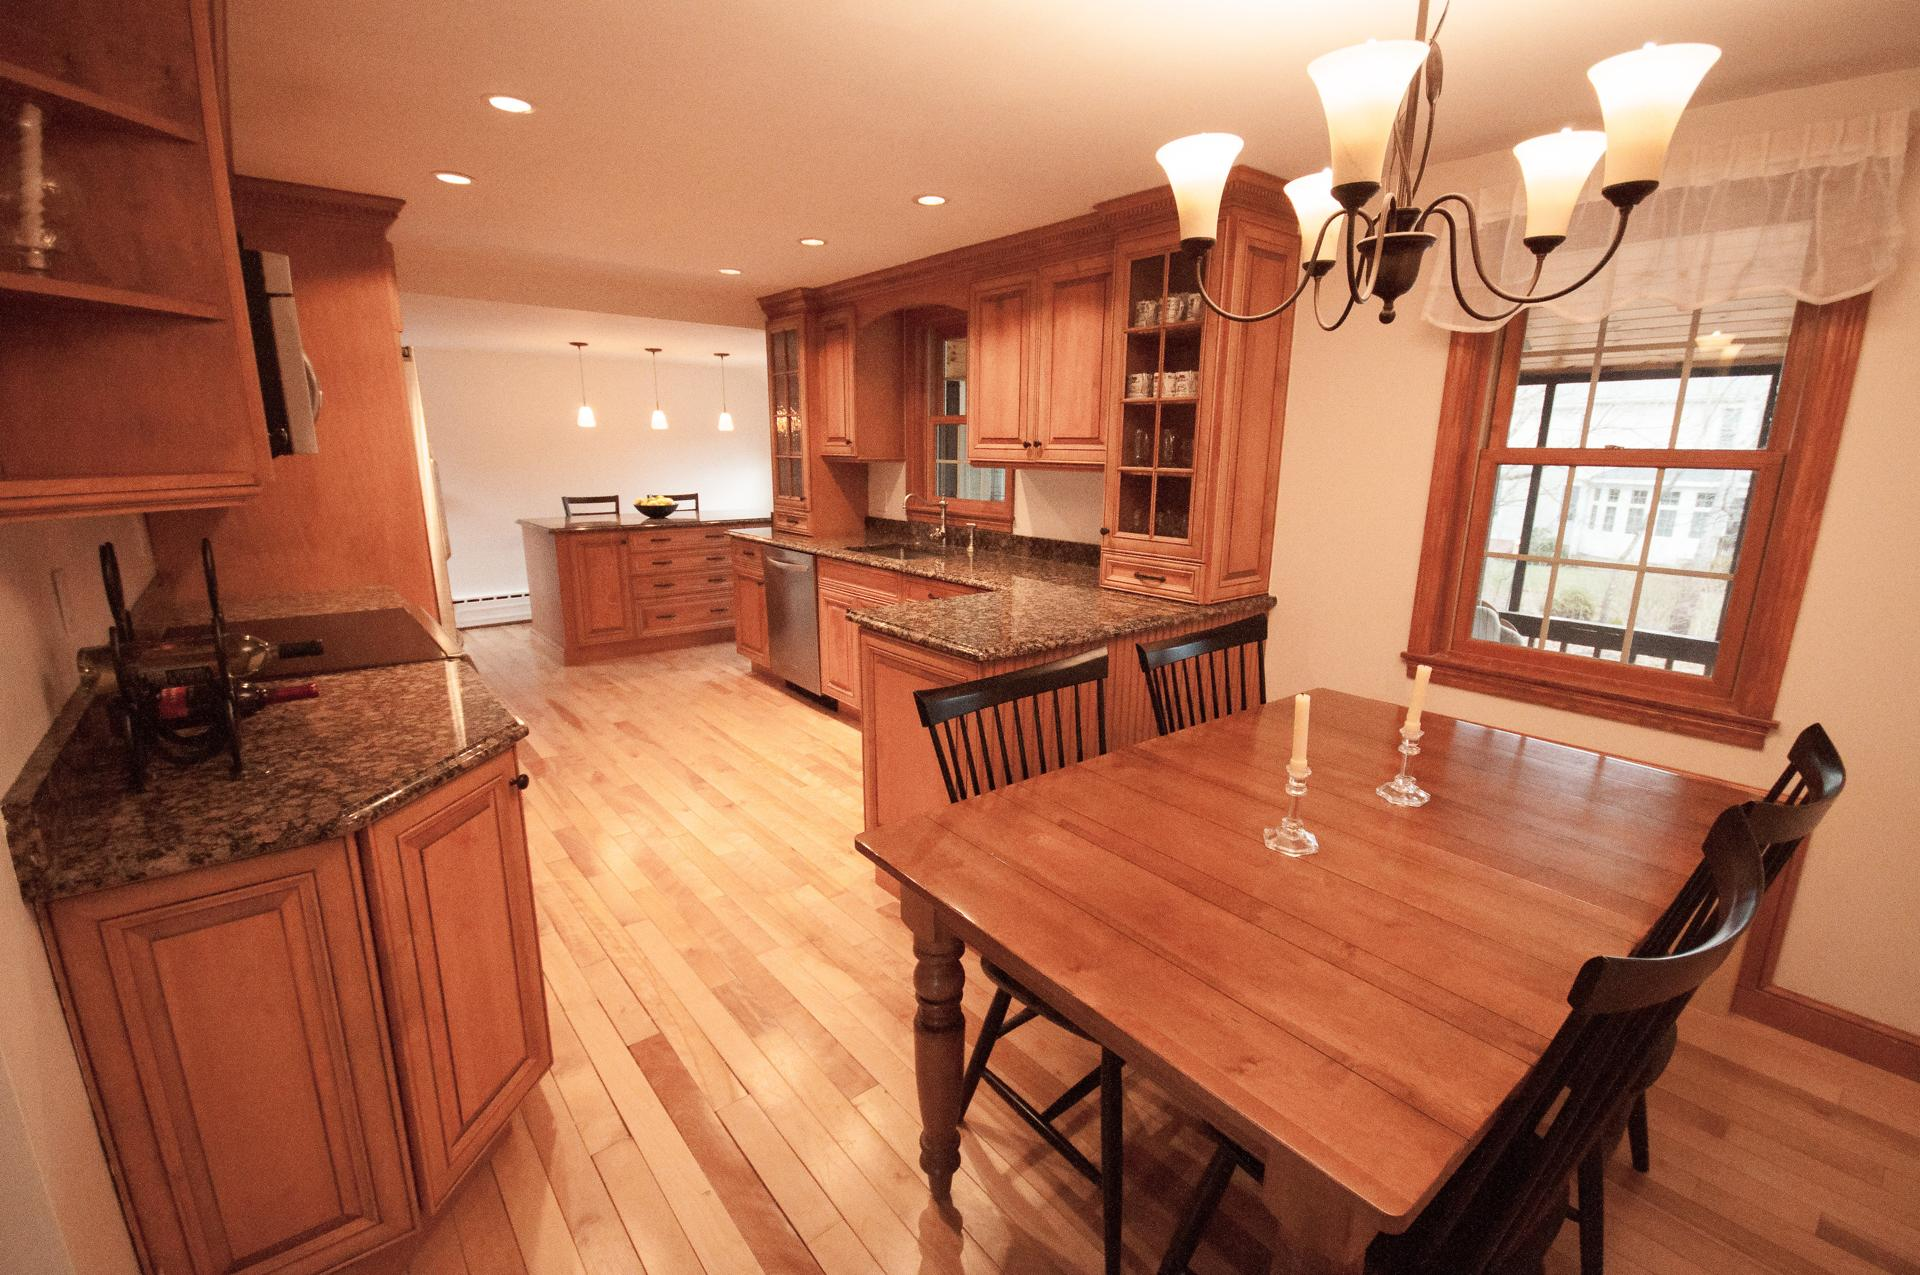 for sale homes in the 600 000 range the boston globe the master features a walk in closet and cozy window seat created from a new dormer additional highlights include a screened porch and one car garage